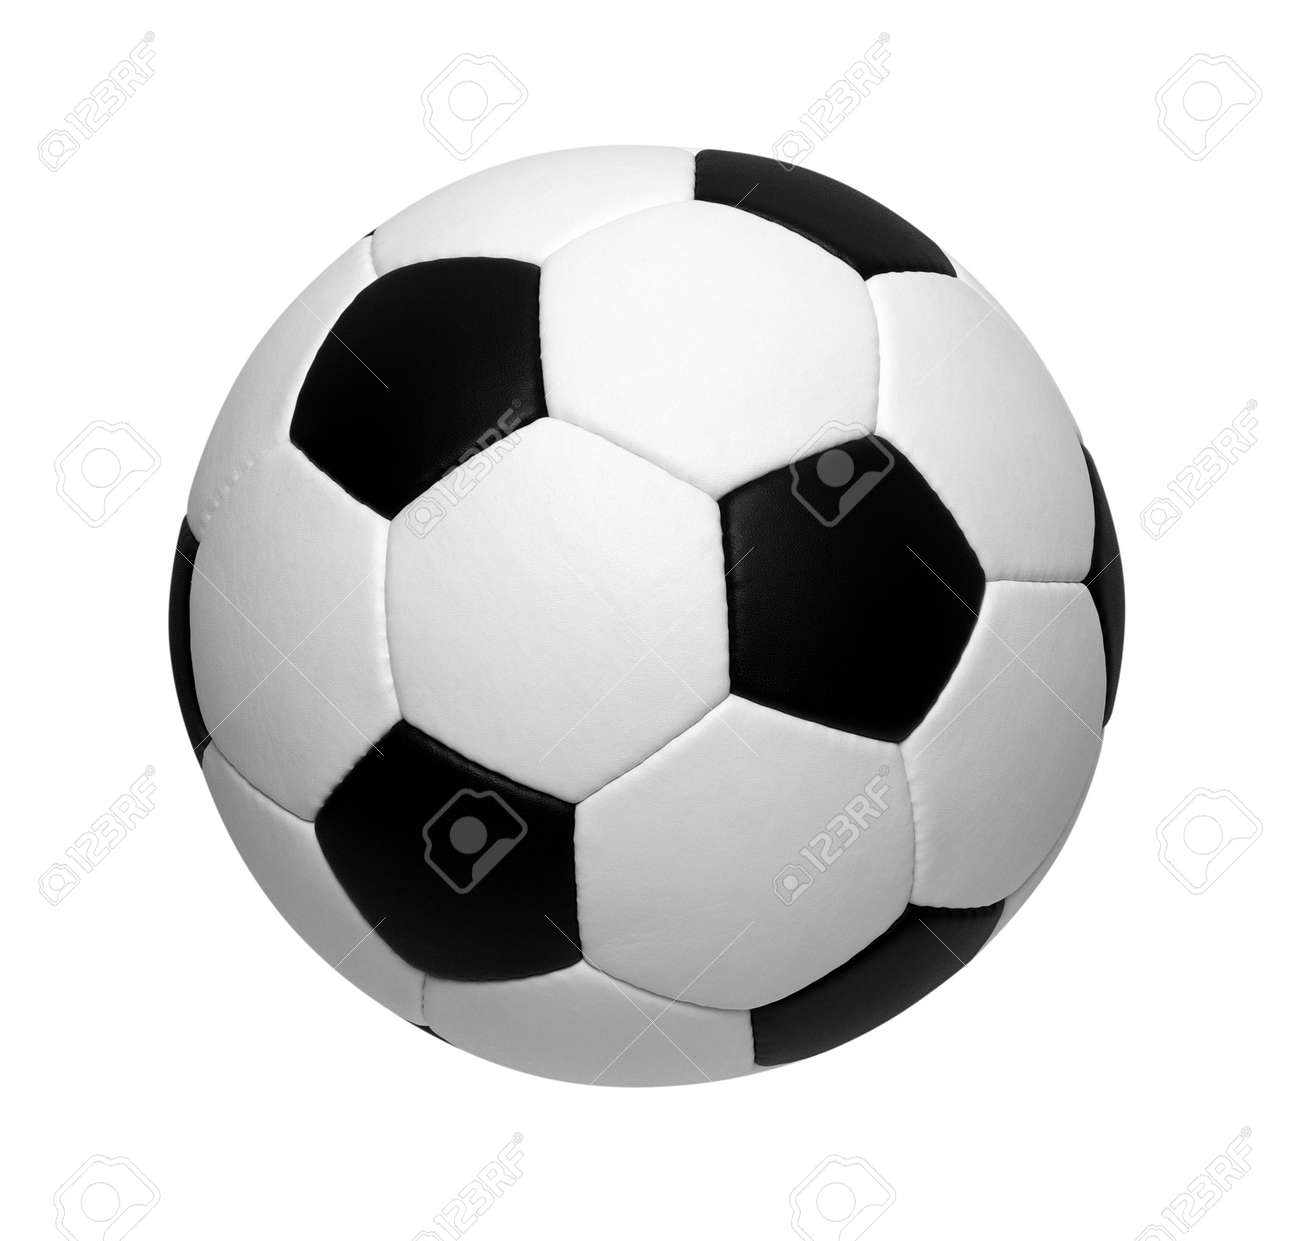 soccer ball isolated on white Banque d'images - 50629846